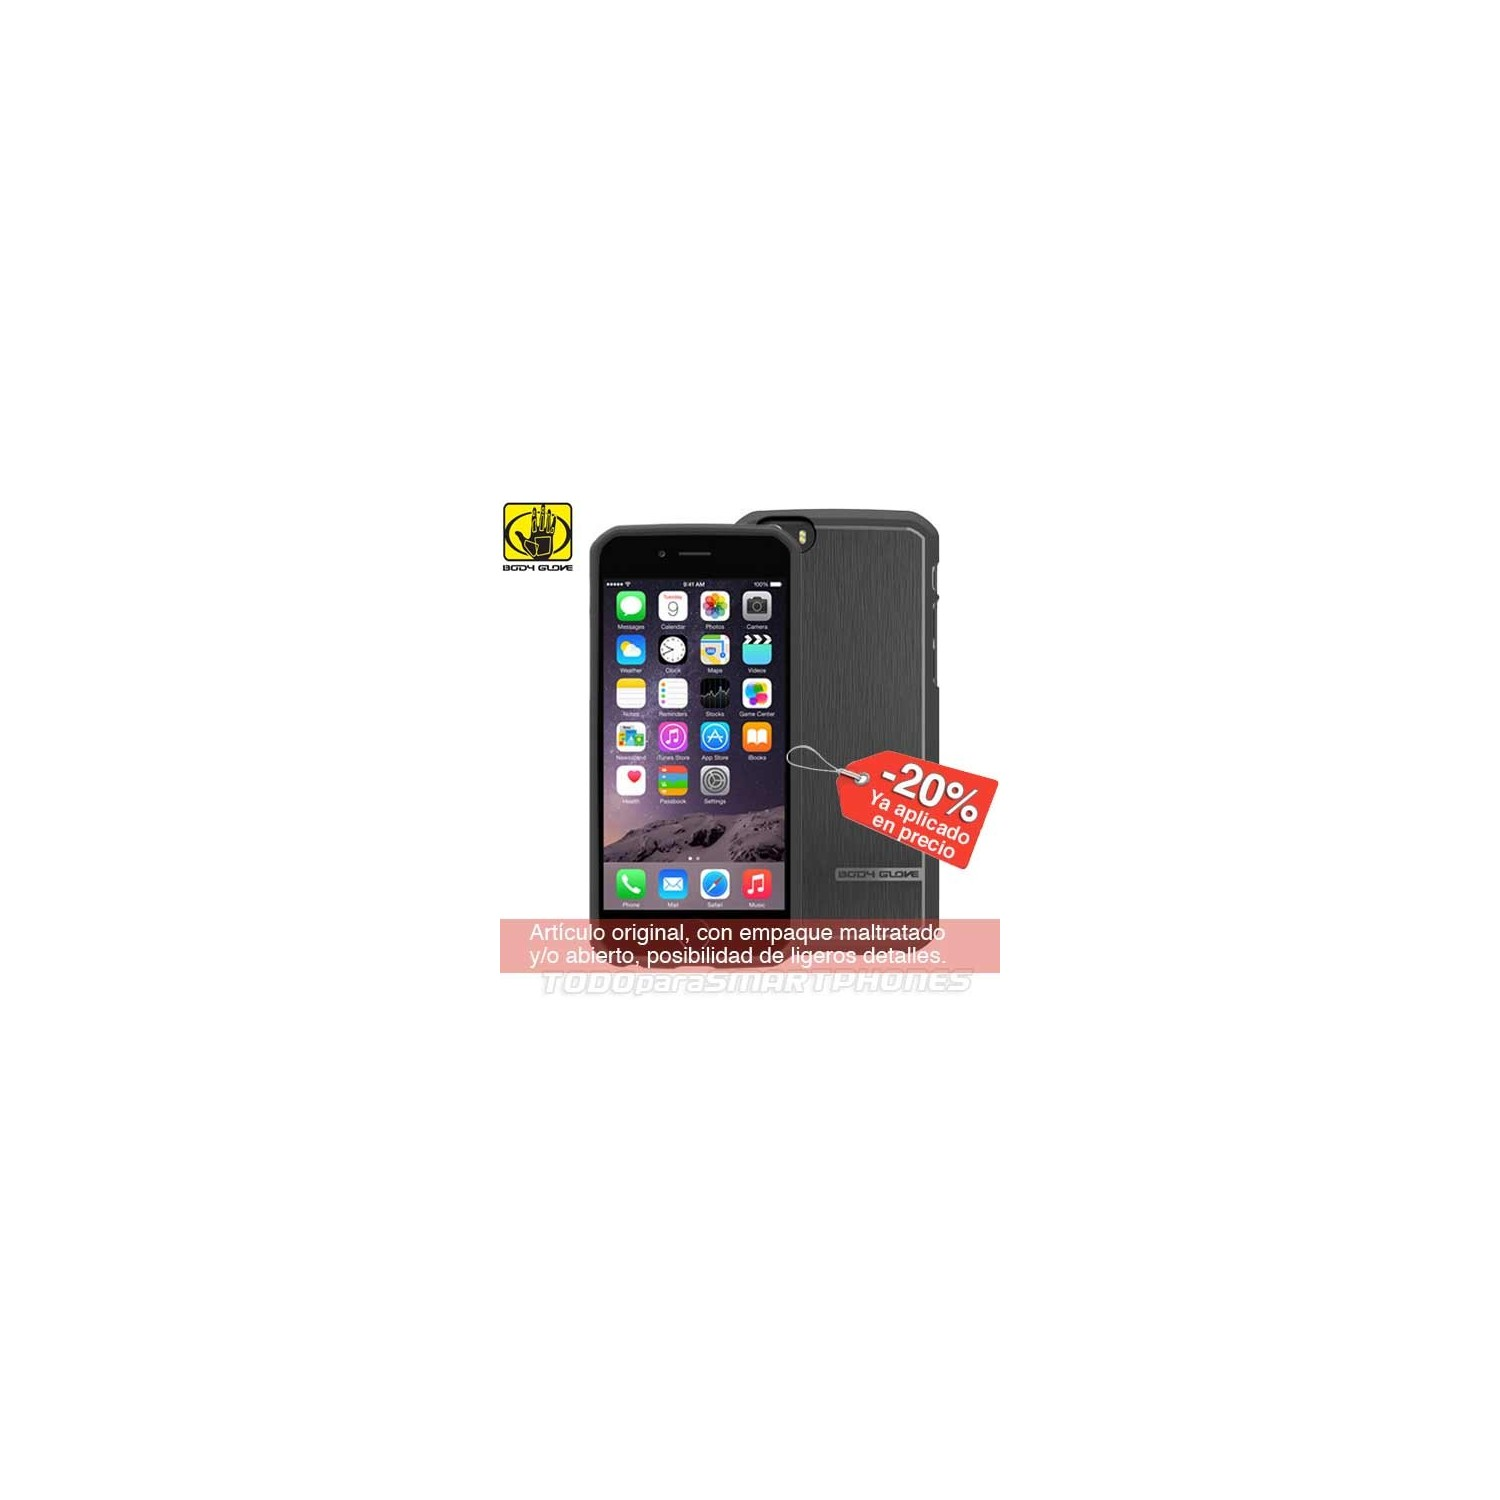 Case - Body Glove for iPhone 6 Plus Satin Black